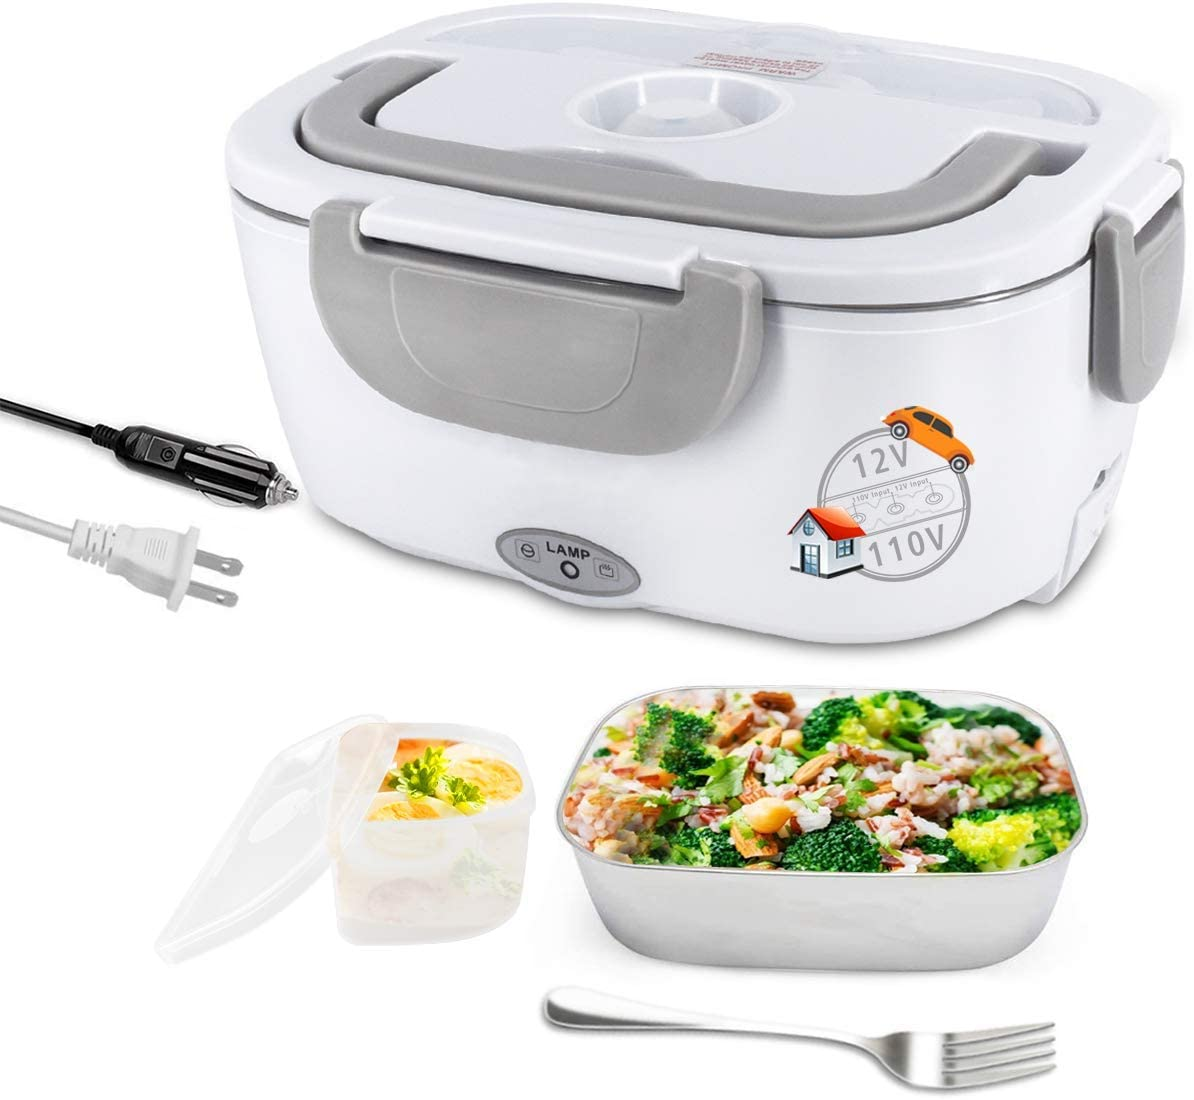 12V & 110V Portable Food Warmer 1.5L Electric Lunch Box with Detachable Stainless Steel Food Container Food Heater Warmer Electric Heat Box for Home & Car to Use (Gray)